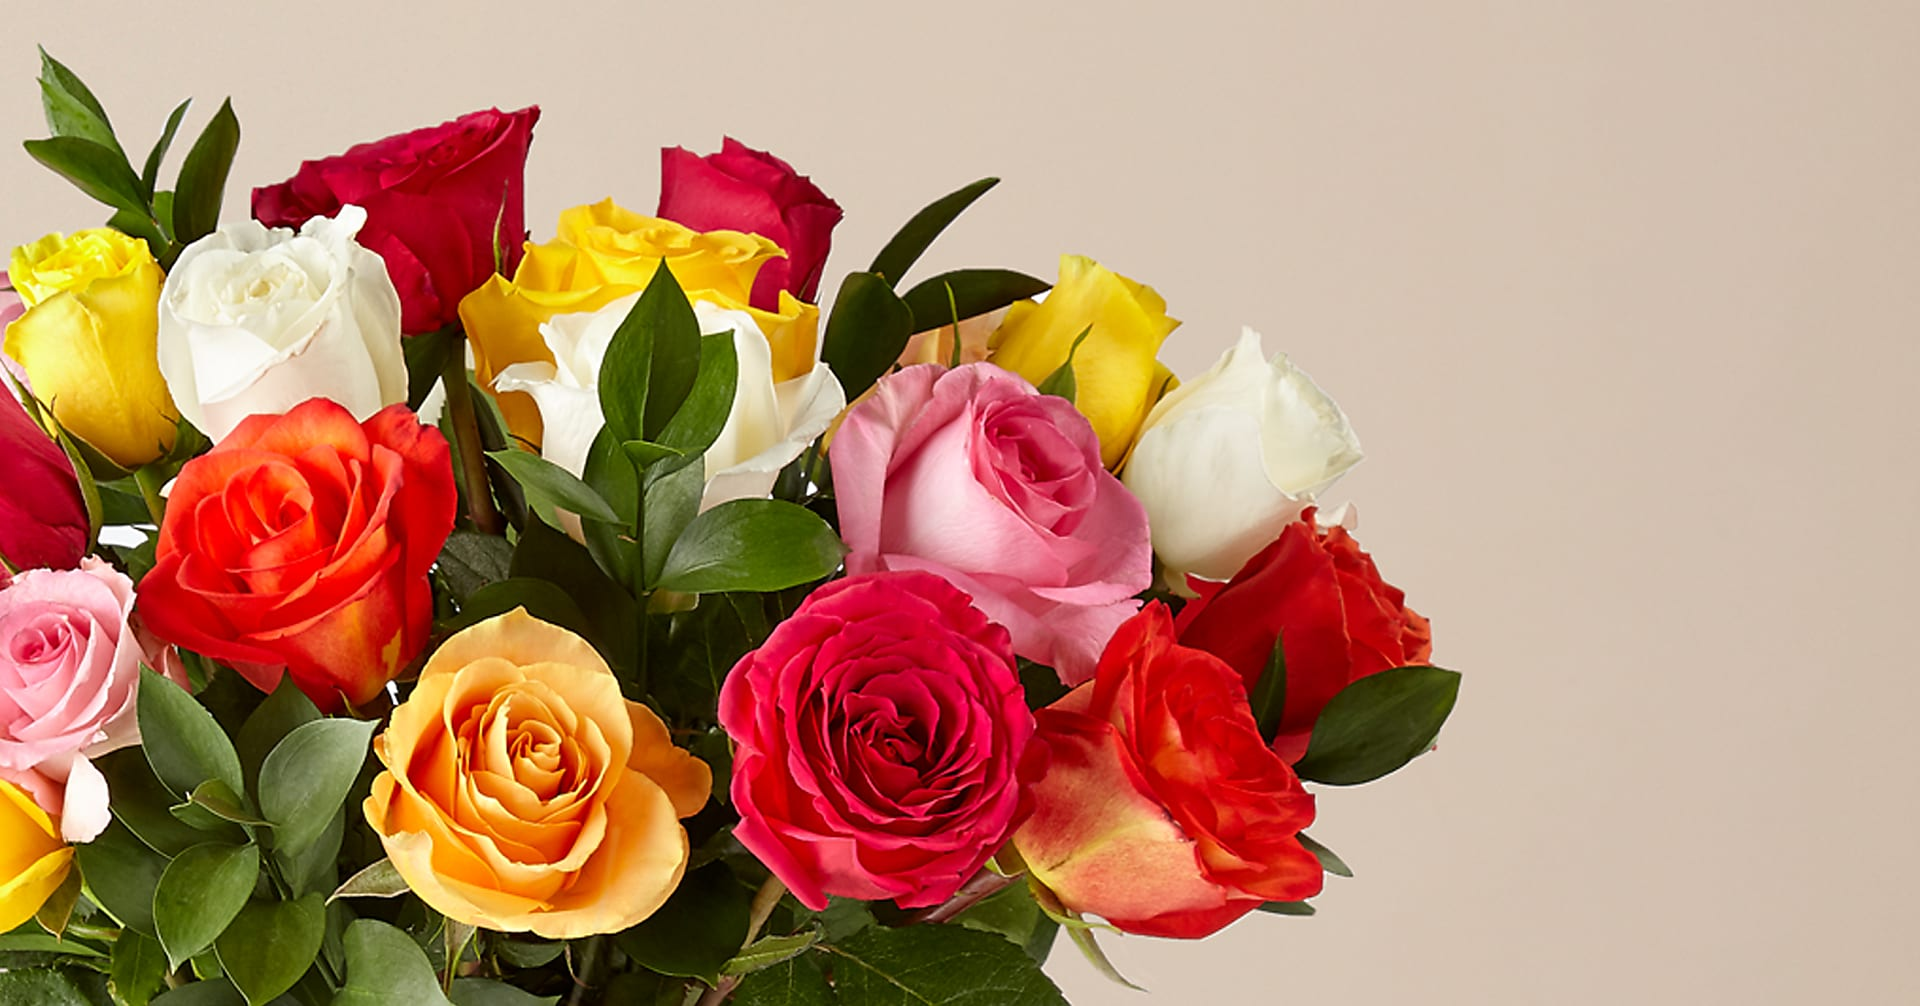 Mixed Roses with Vase - Image 3 Of 6